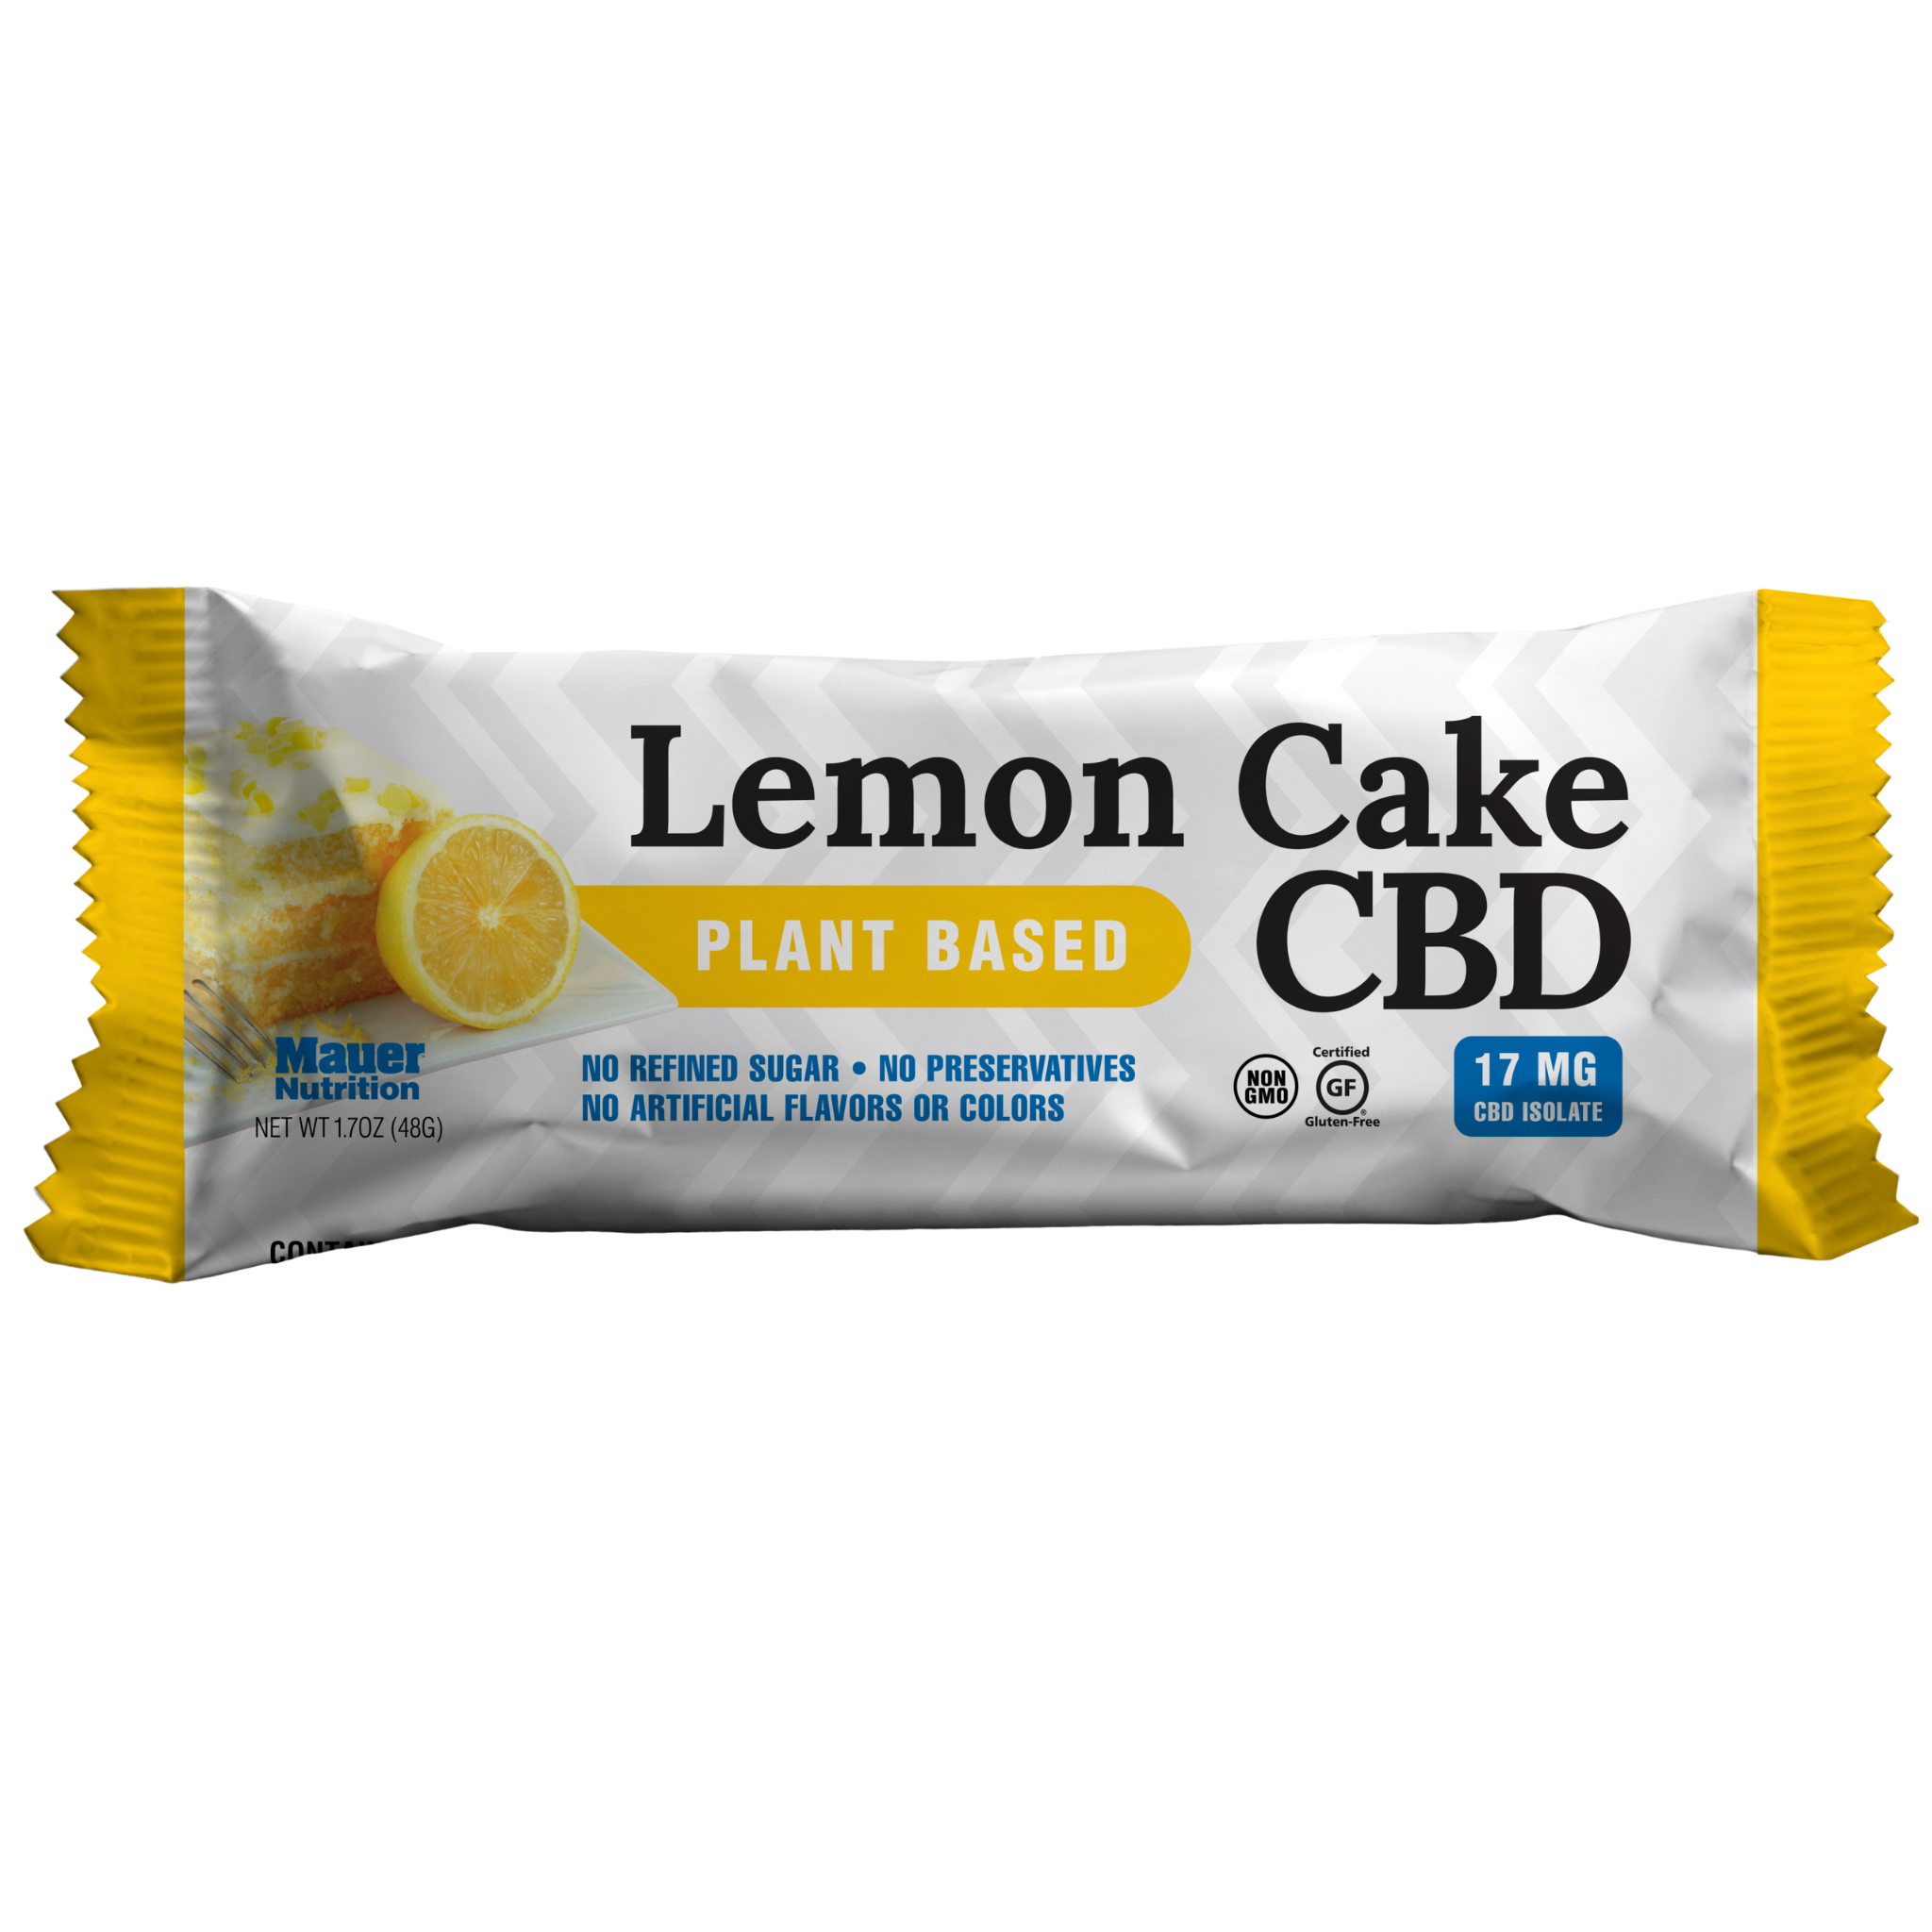 Lemon Cake CBD